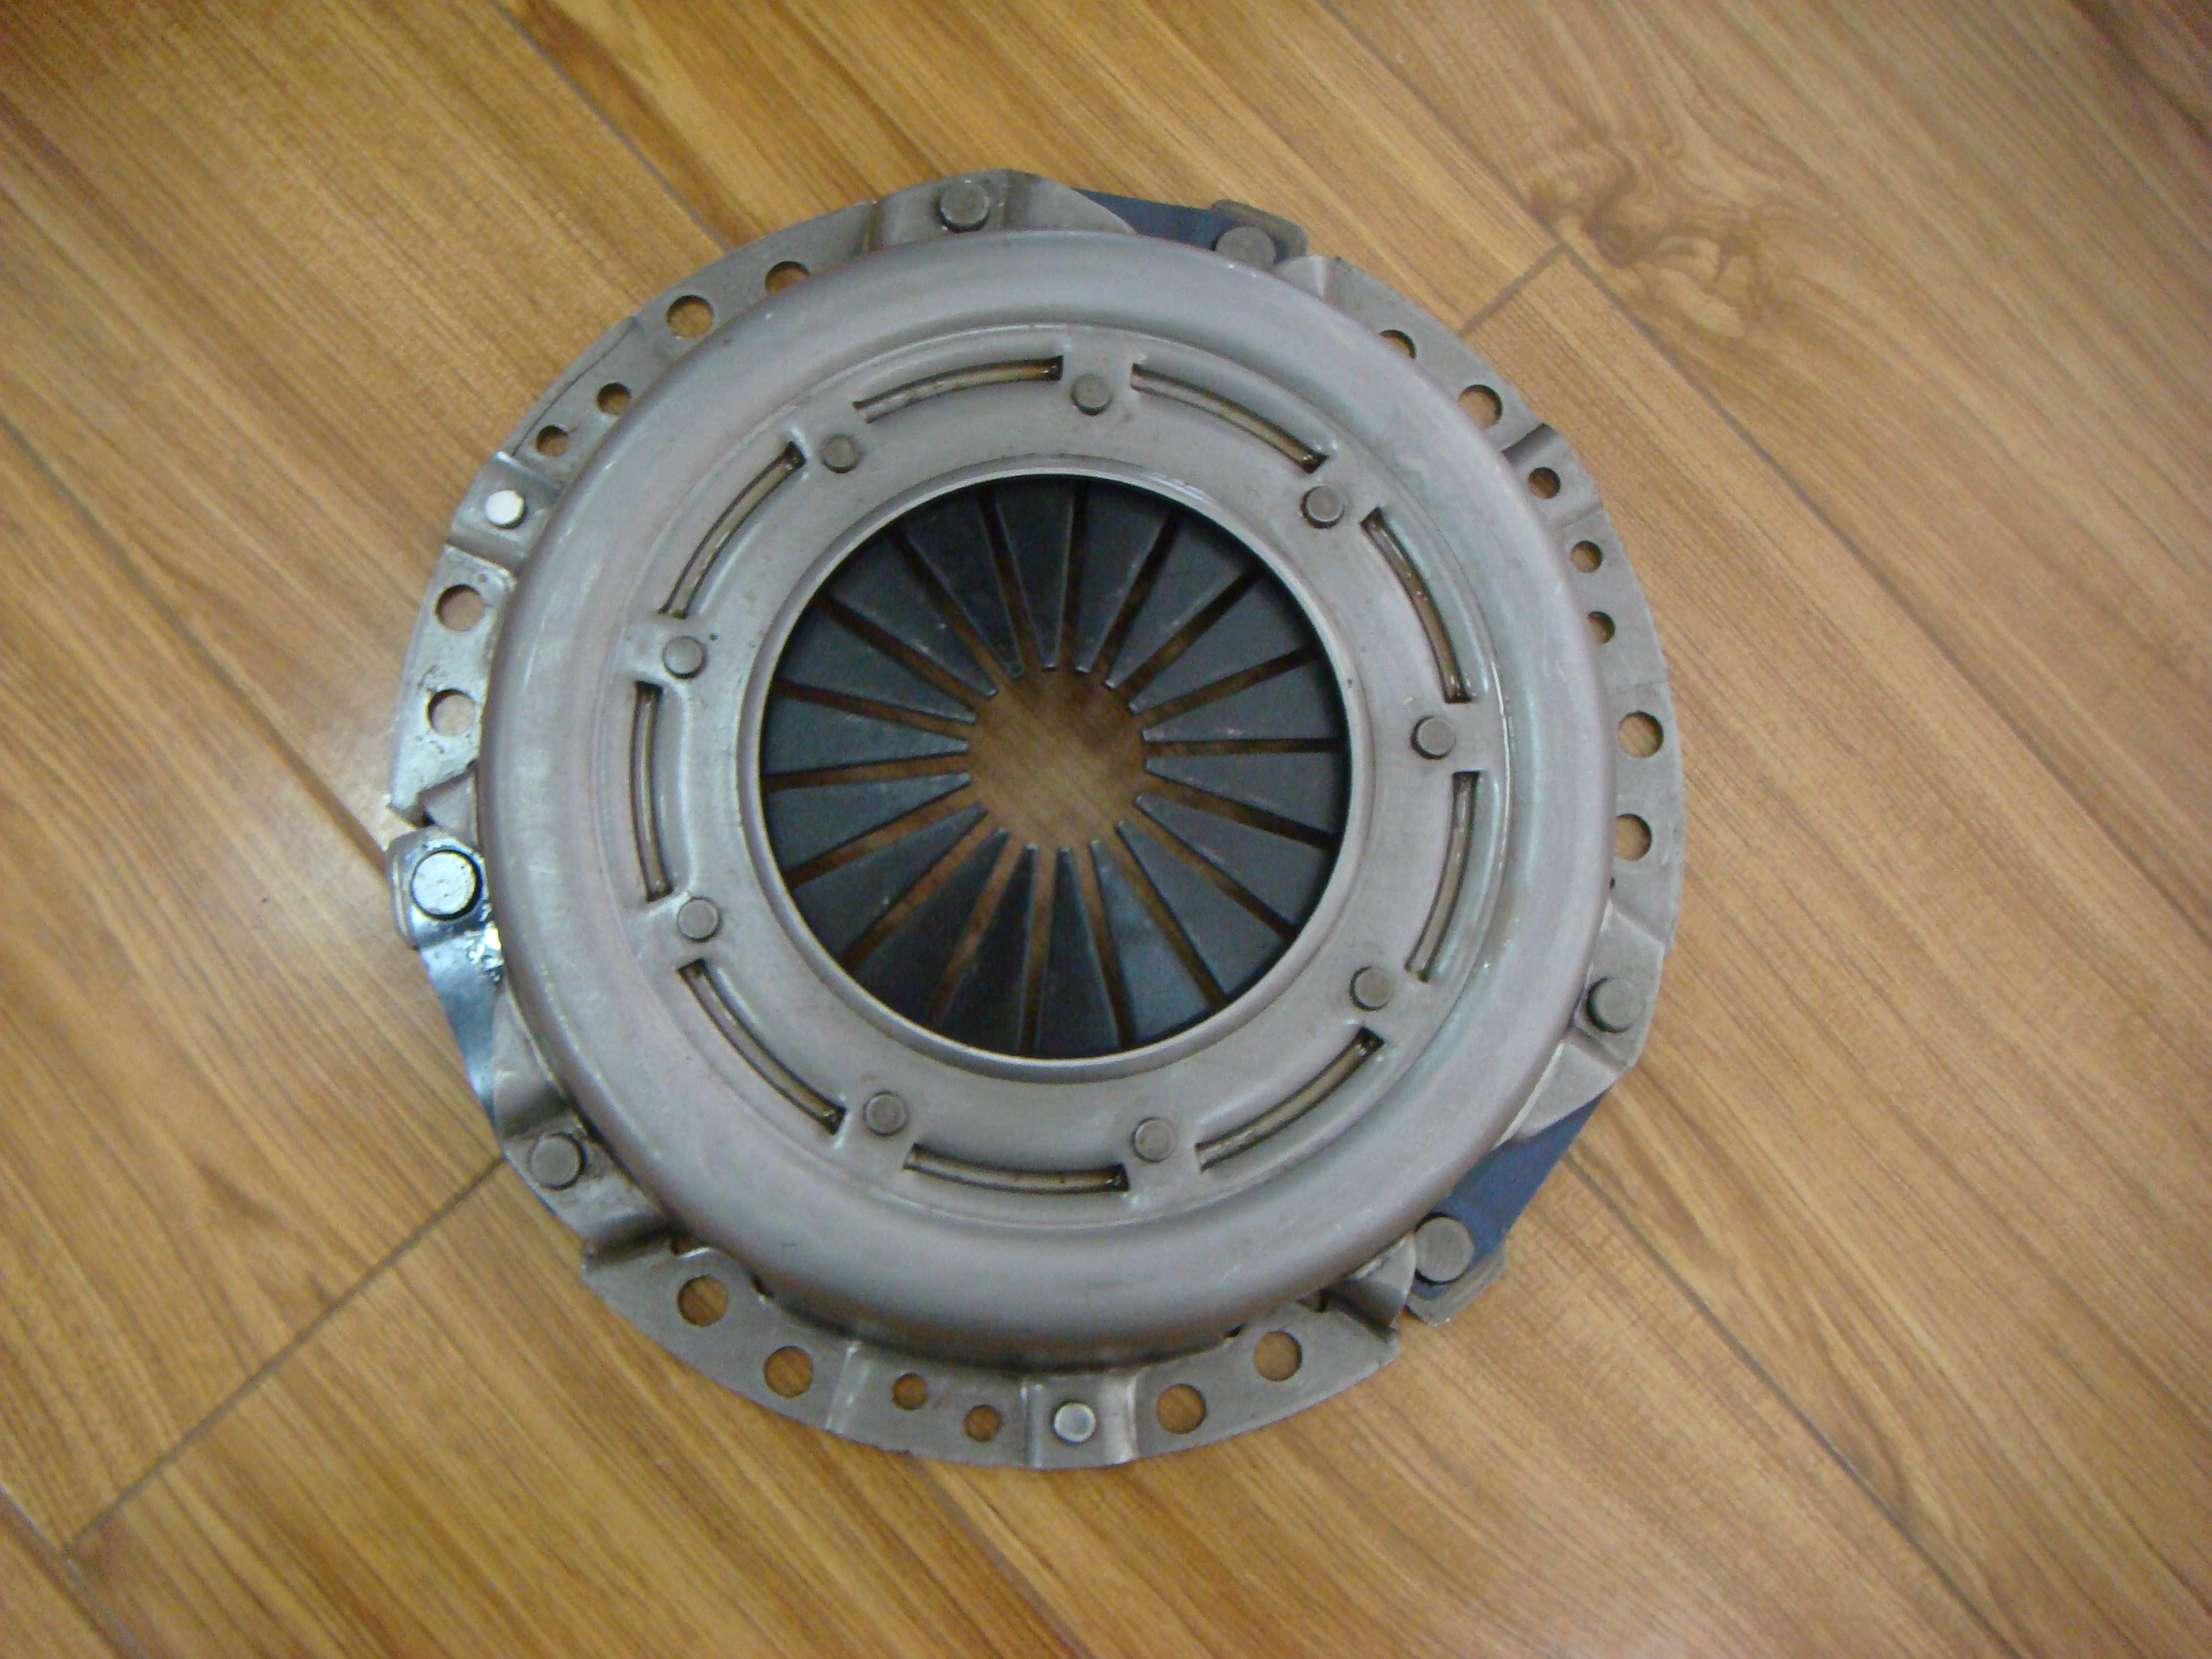 Clutch Disc for NIS SEN 160,1.6 E16 3 019 VL8 00B 1 019 V05 70B NTN160603